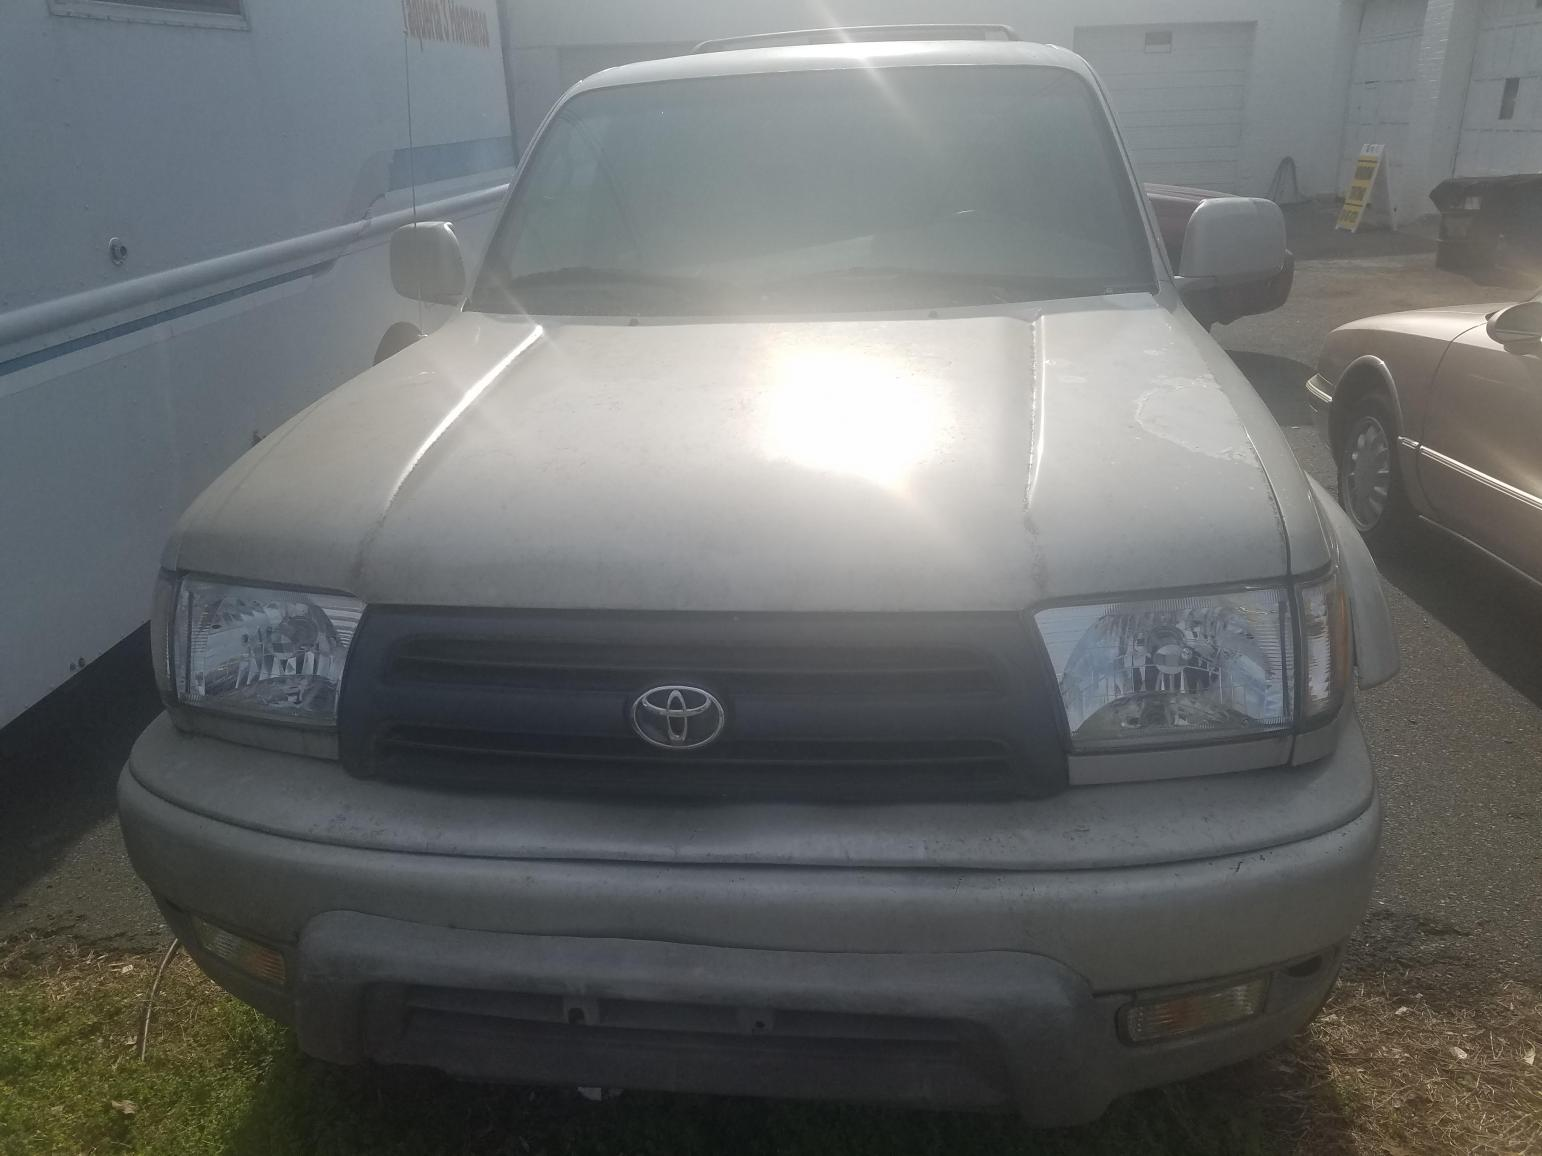 Part a 2000 LTD 4WD and 1999 4WD SR5 - Mid Atlantic (NC)-20190330_170214-jpg